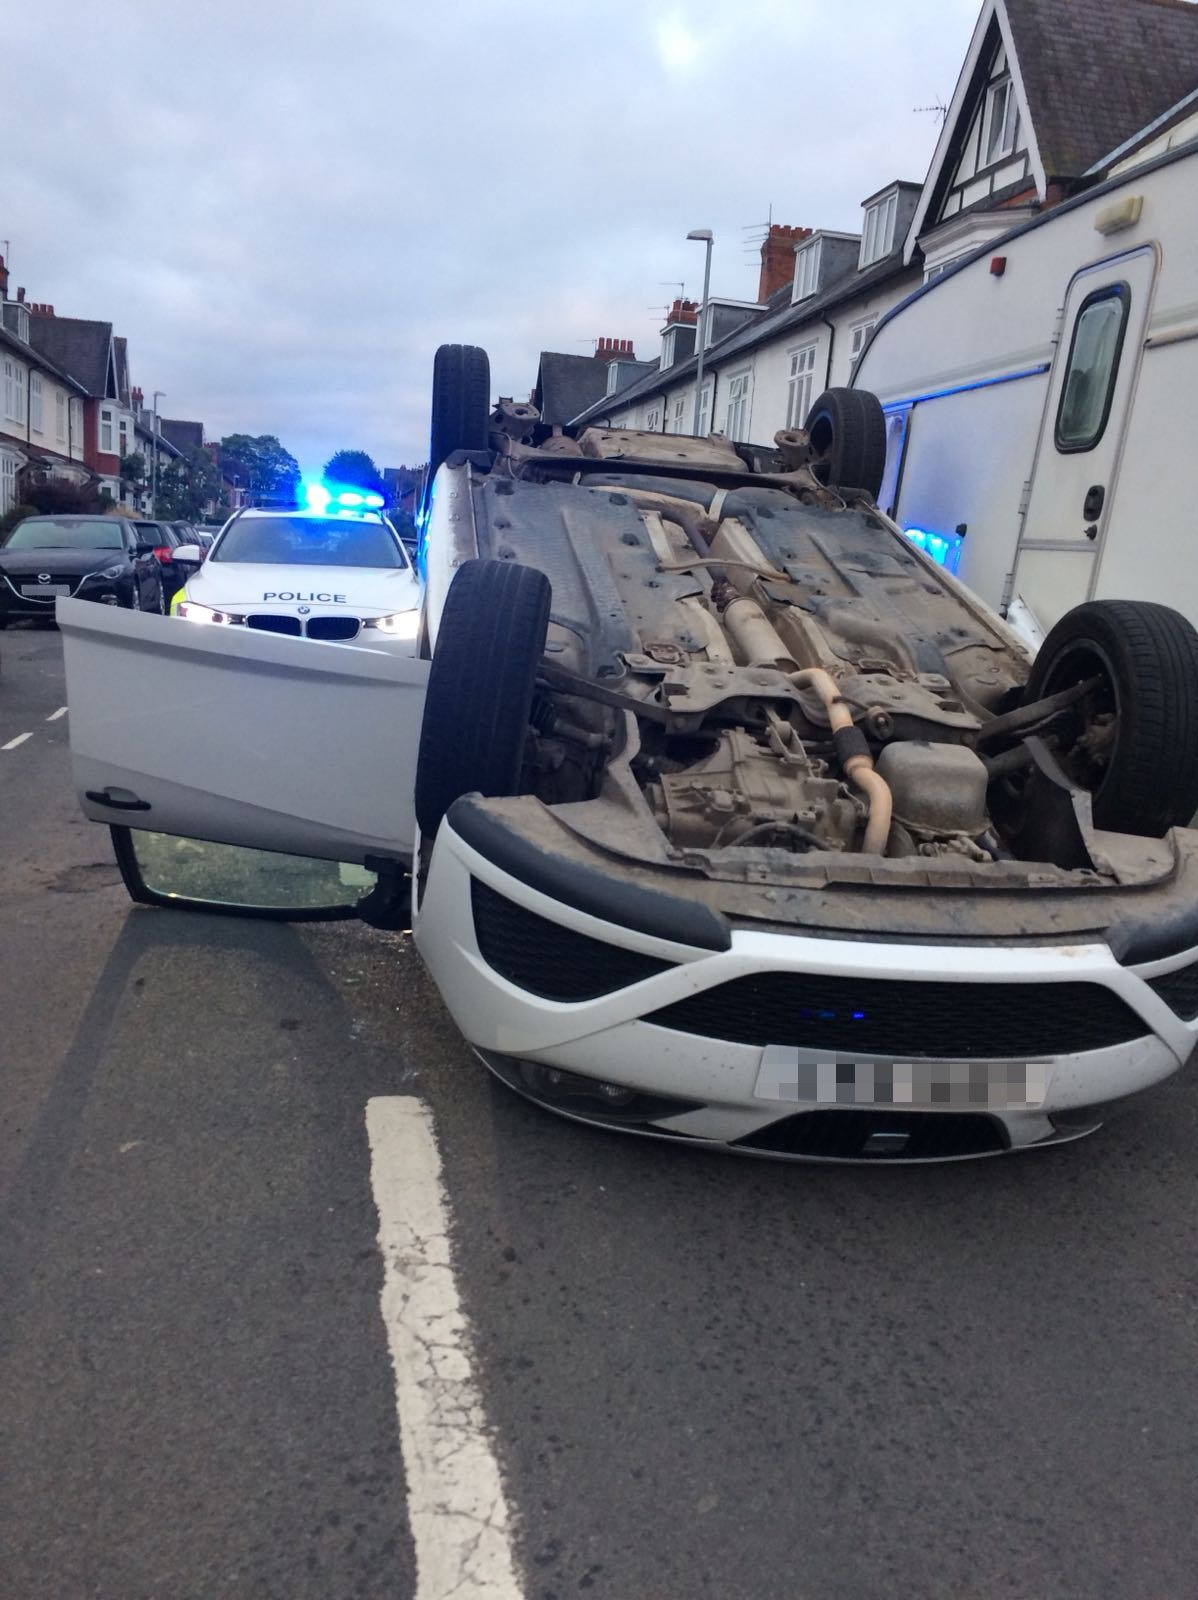 Jacob Gardiner, 18, flipped his car while drink driving just two weeks after passing his test. Picture: DURHAM RPU